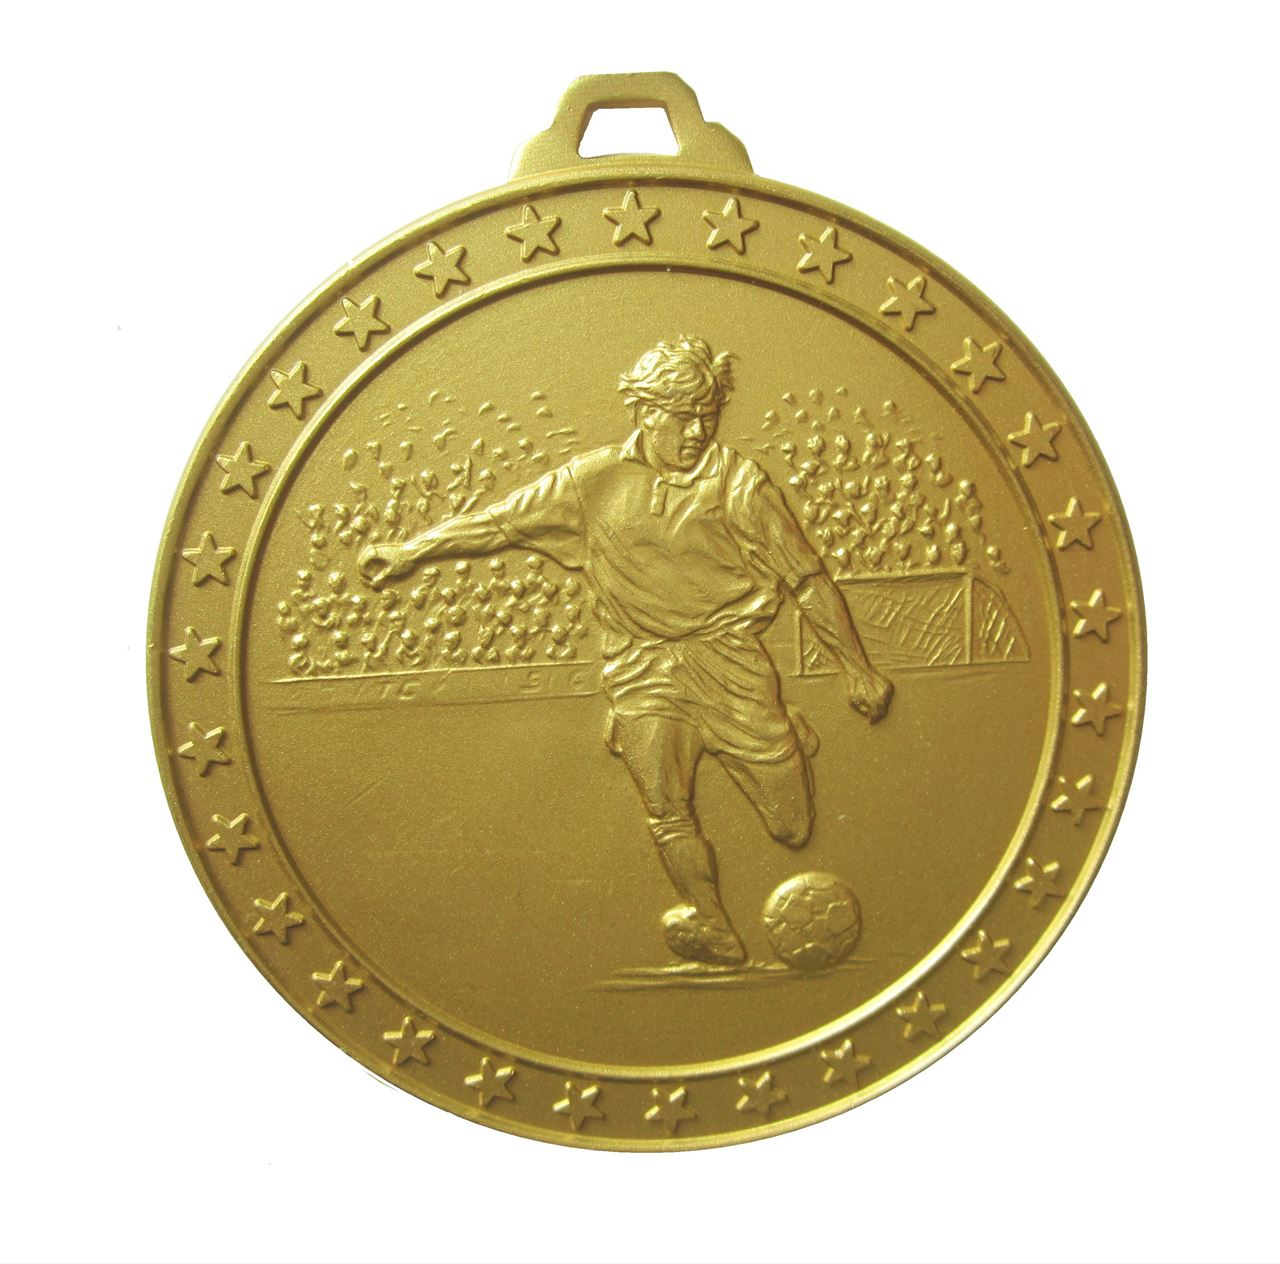 Gold Economy Football Star Medal (size: 60mm) - 434E